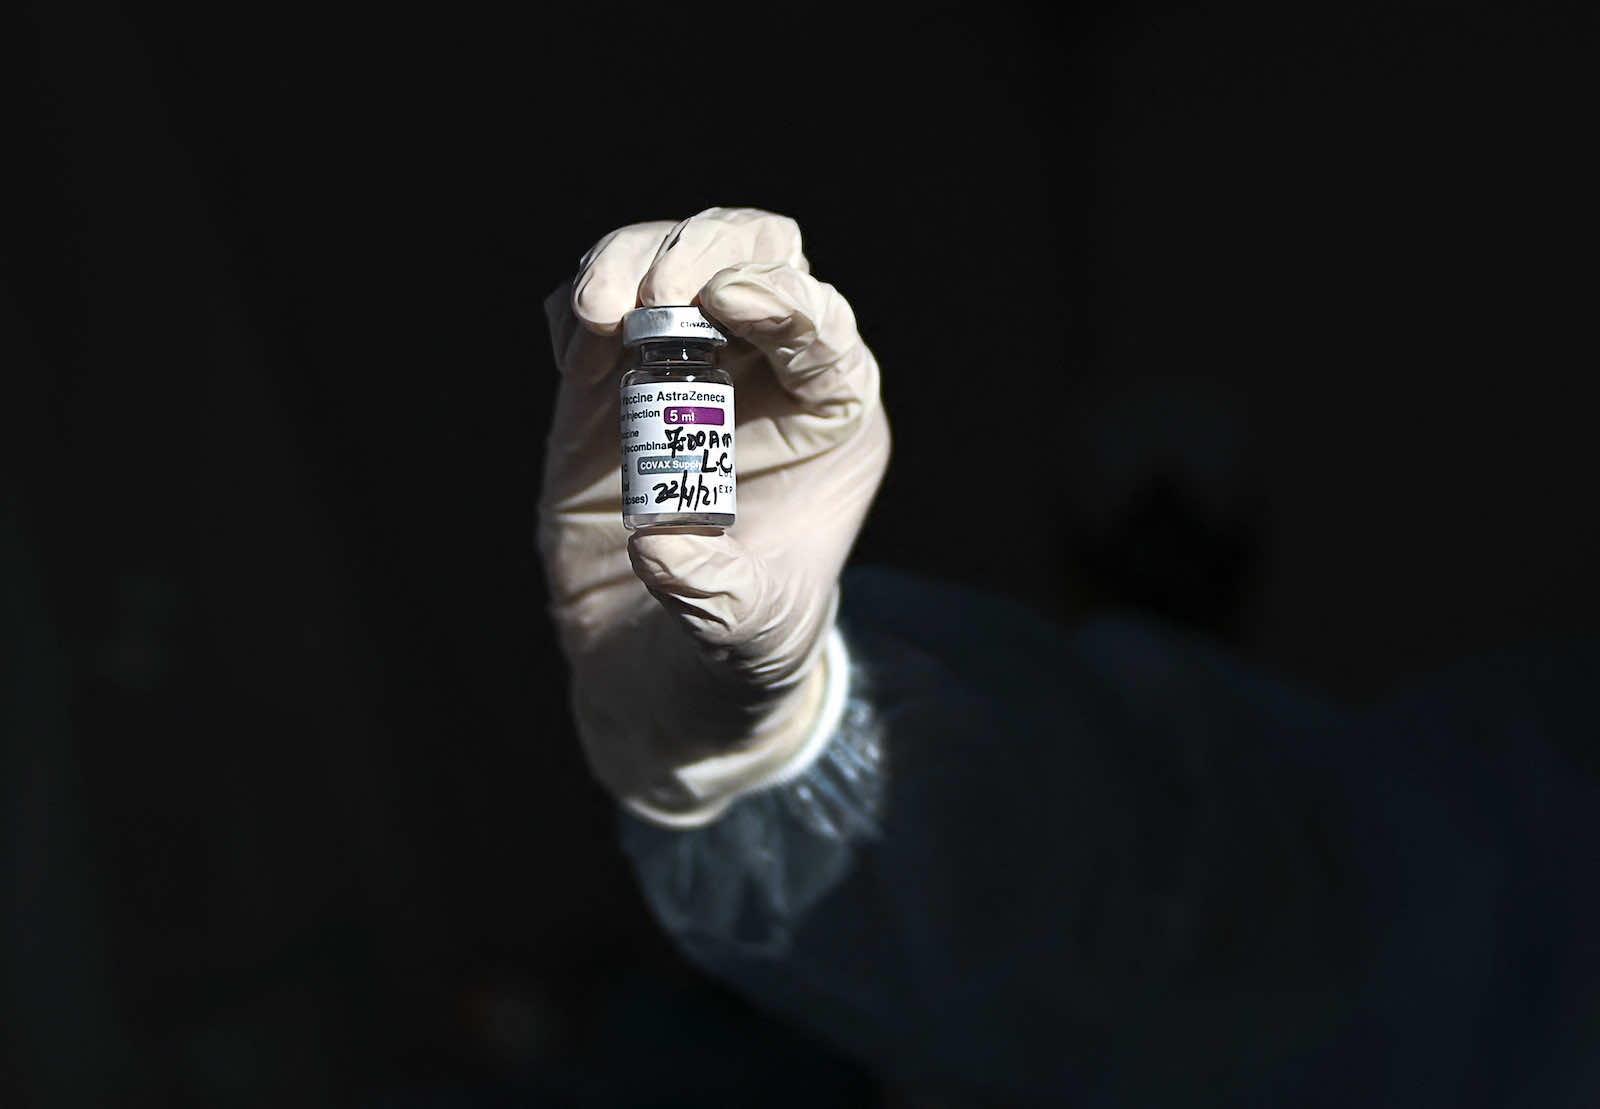 Australia's geographic position in the Indo-Pacific region and abundance of vaccines mean it could do more to support other countries (Luis Acosta/AFP via Getty Images)